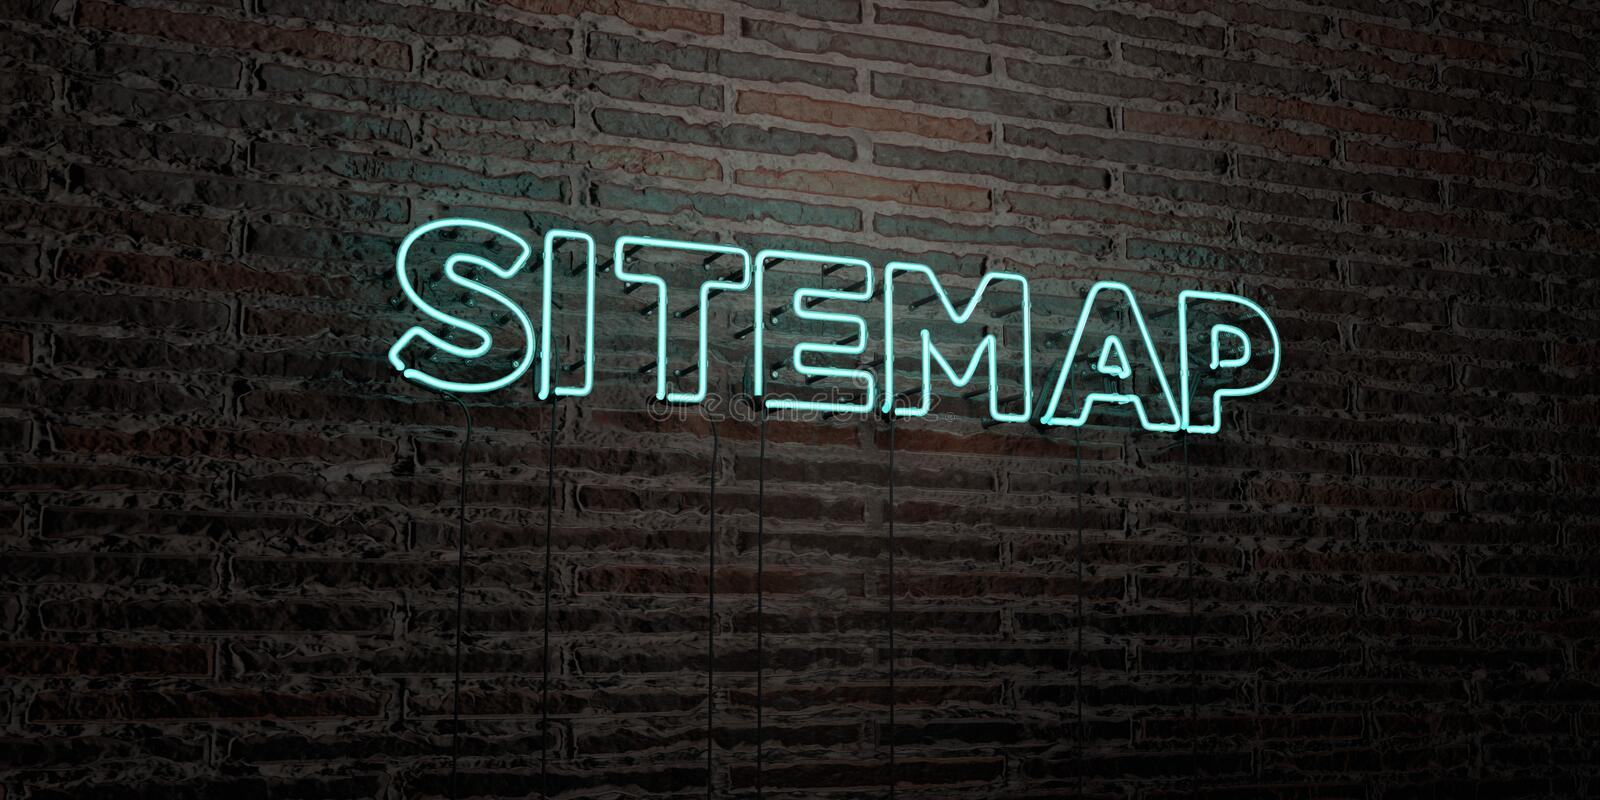 SITEMAP -Realistic Neon Sign on Brick Wall background - 3D rendered royalty free stock image royalty free illustration